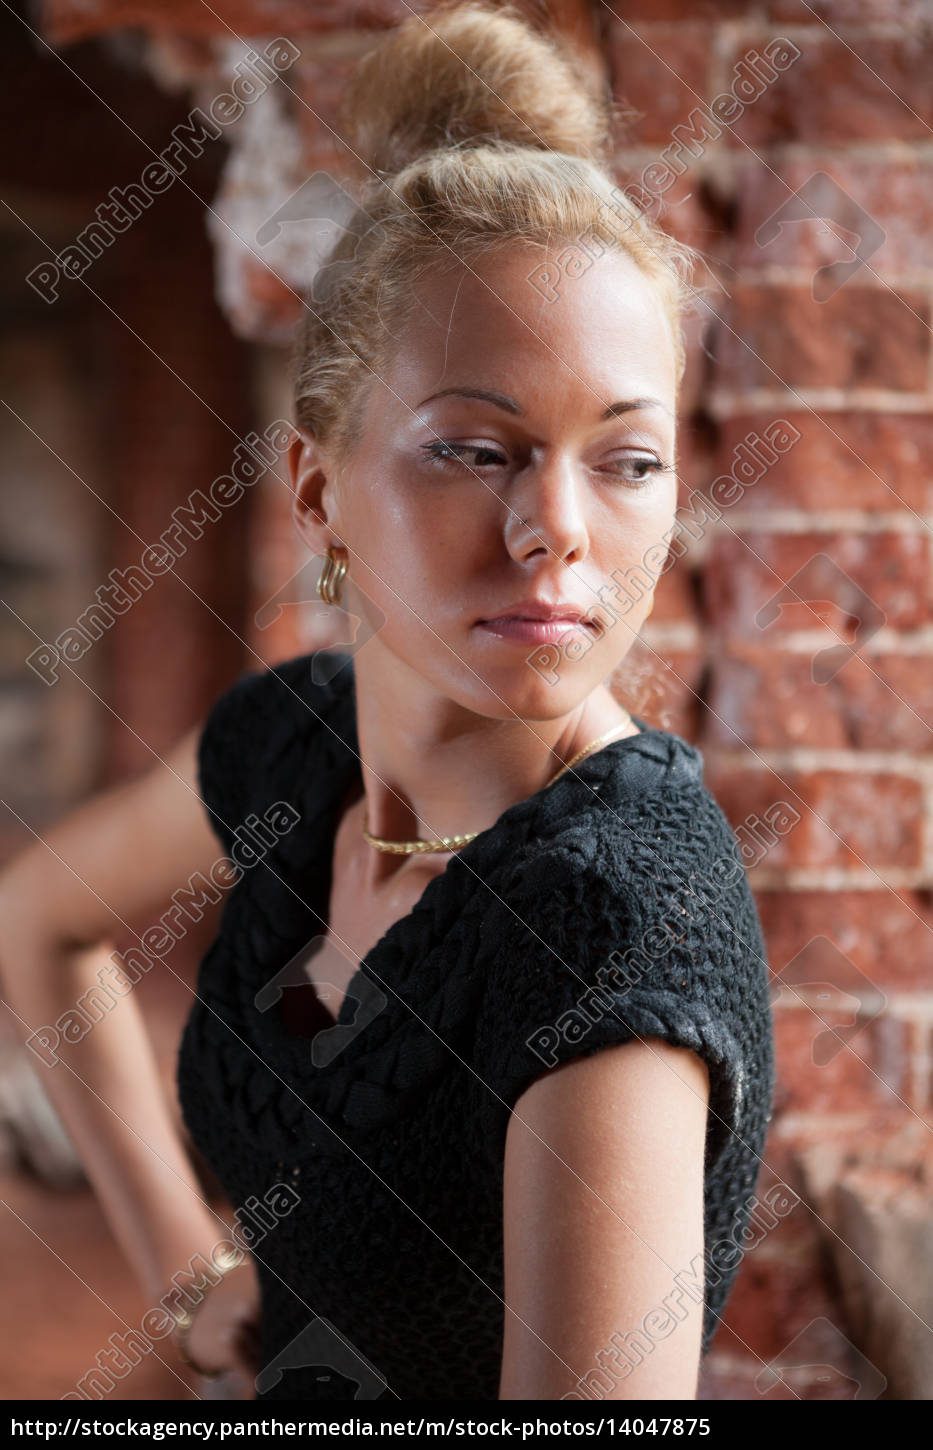 young, women, on, brick, wall, background - 14047875